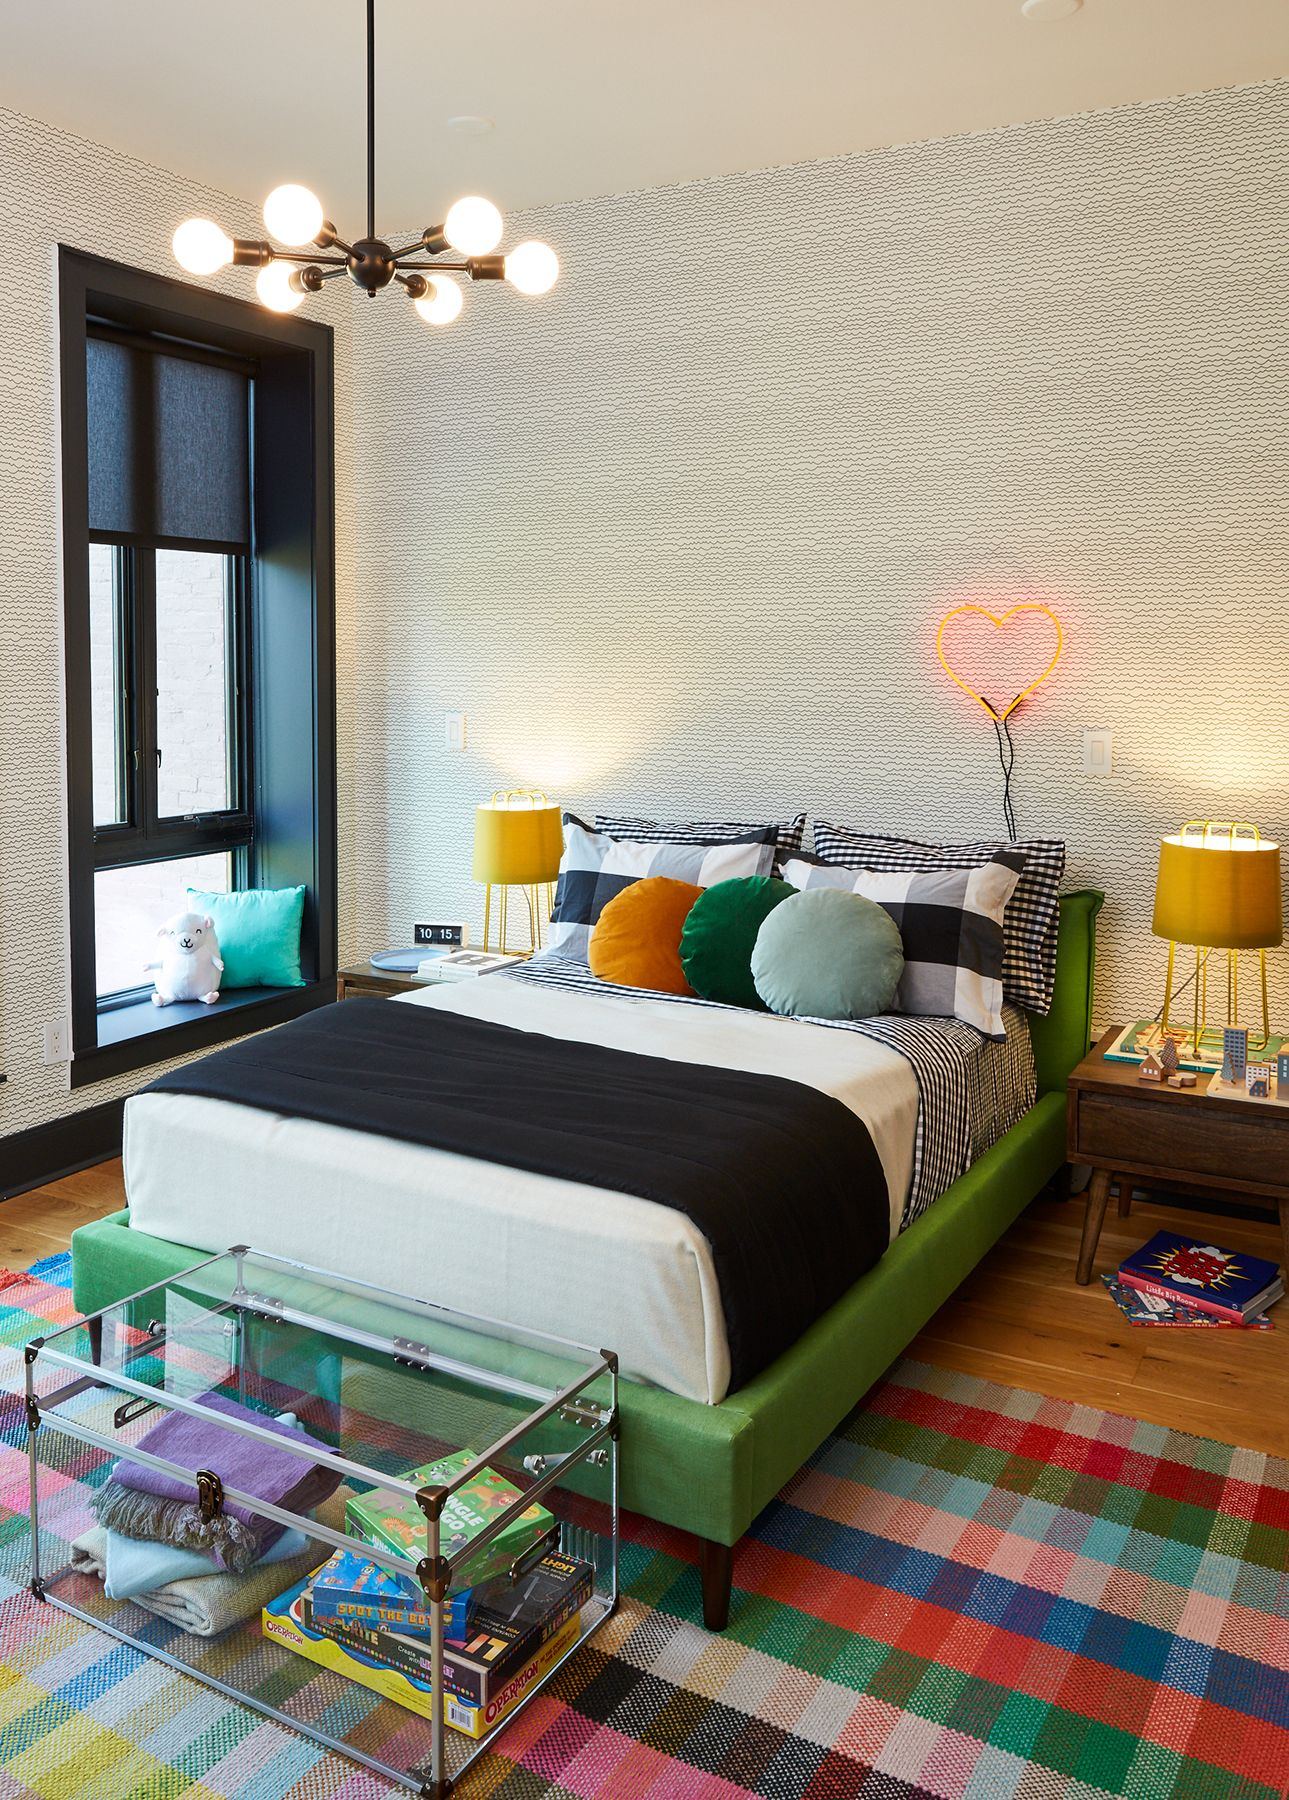 Step Inside The 2019 Real Simple Home Find 250 Design Ideas Simple House Home Interior Design Real simple bedroom ideas